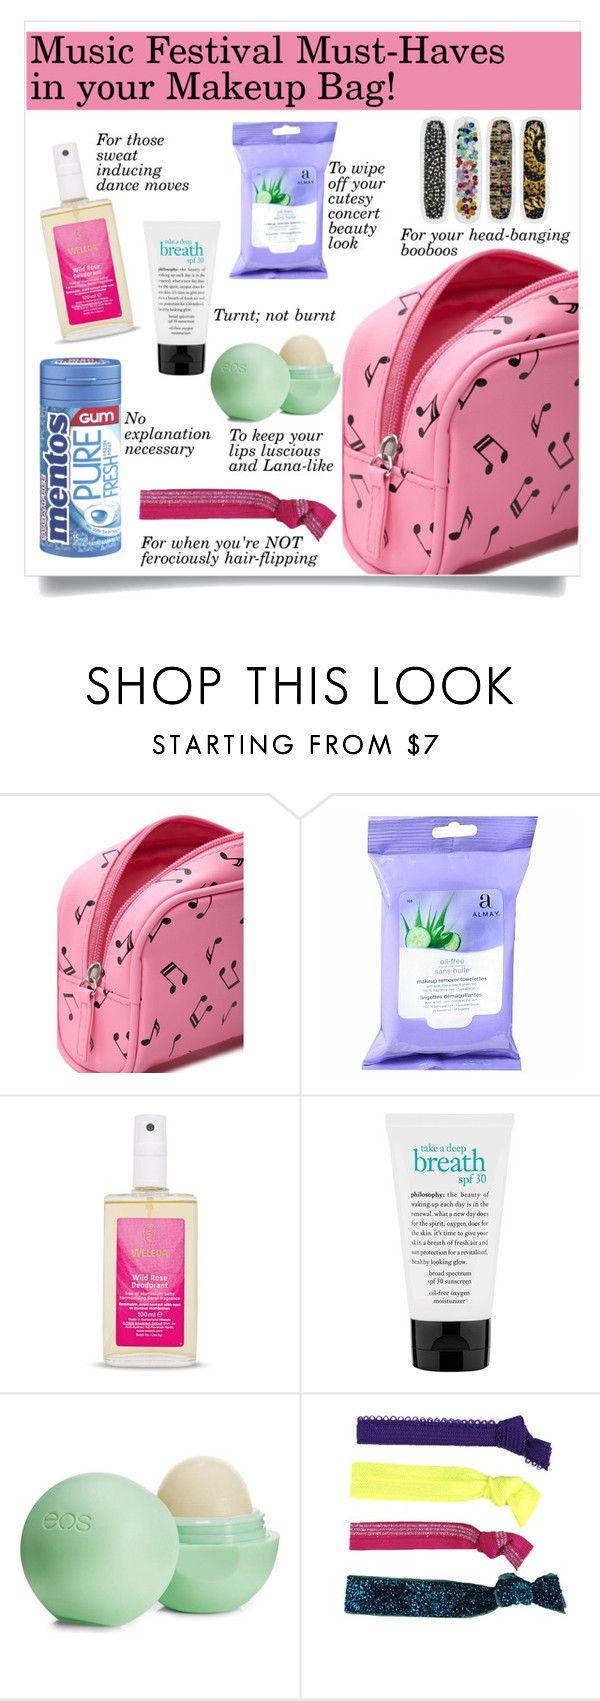 """""""Music Festival Must-Haves in your Makeup Bag!"""" by makingastatement ❤ liked on Polyvore featuring beauty, Forever 21, Almay, Weleda, philosophy, Eos, Glam Bands, contestentry and musicfestivalstyle"""